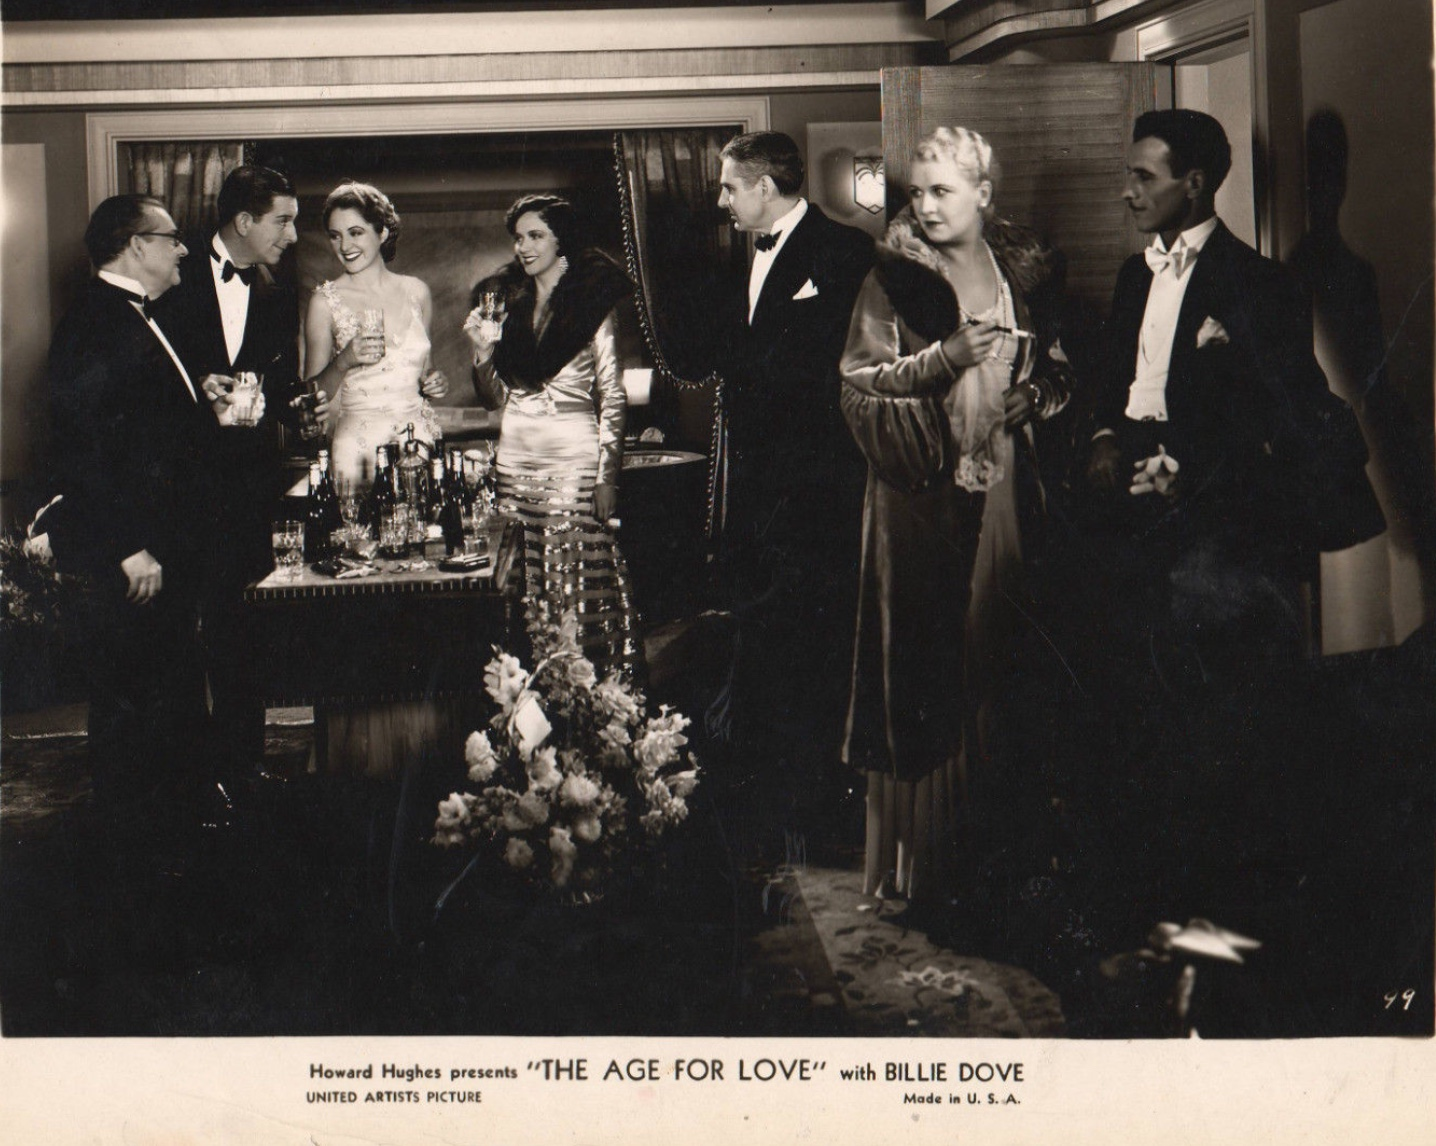 Edward Everett Horton, Billie Dove, Mary Duncan, Jed Prouty, and Lois Wilson in The Age for Love (1931)